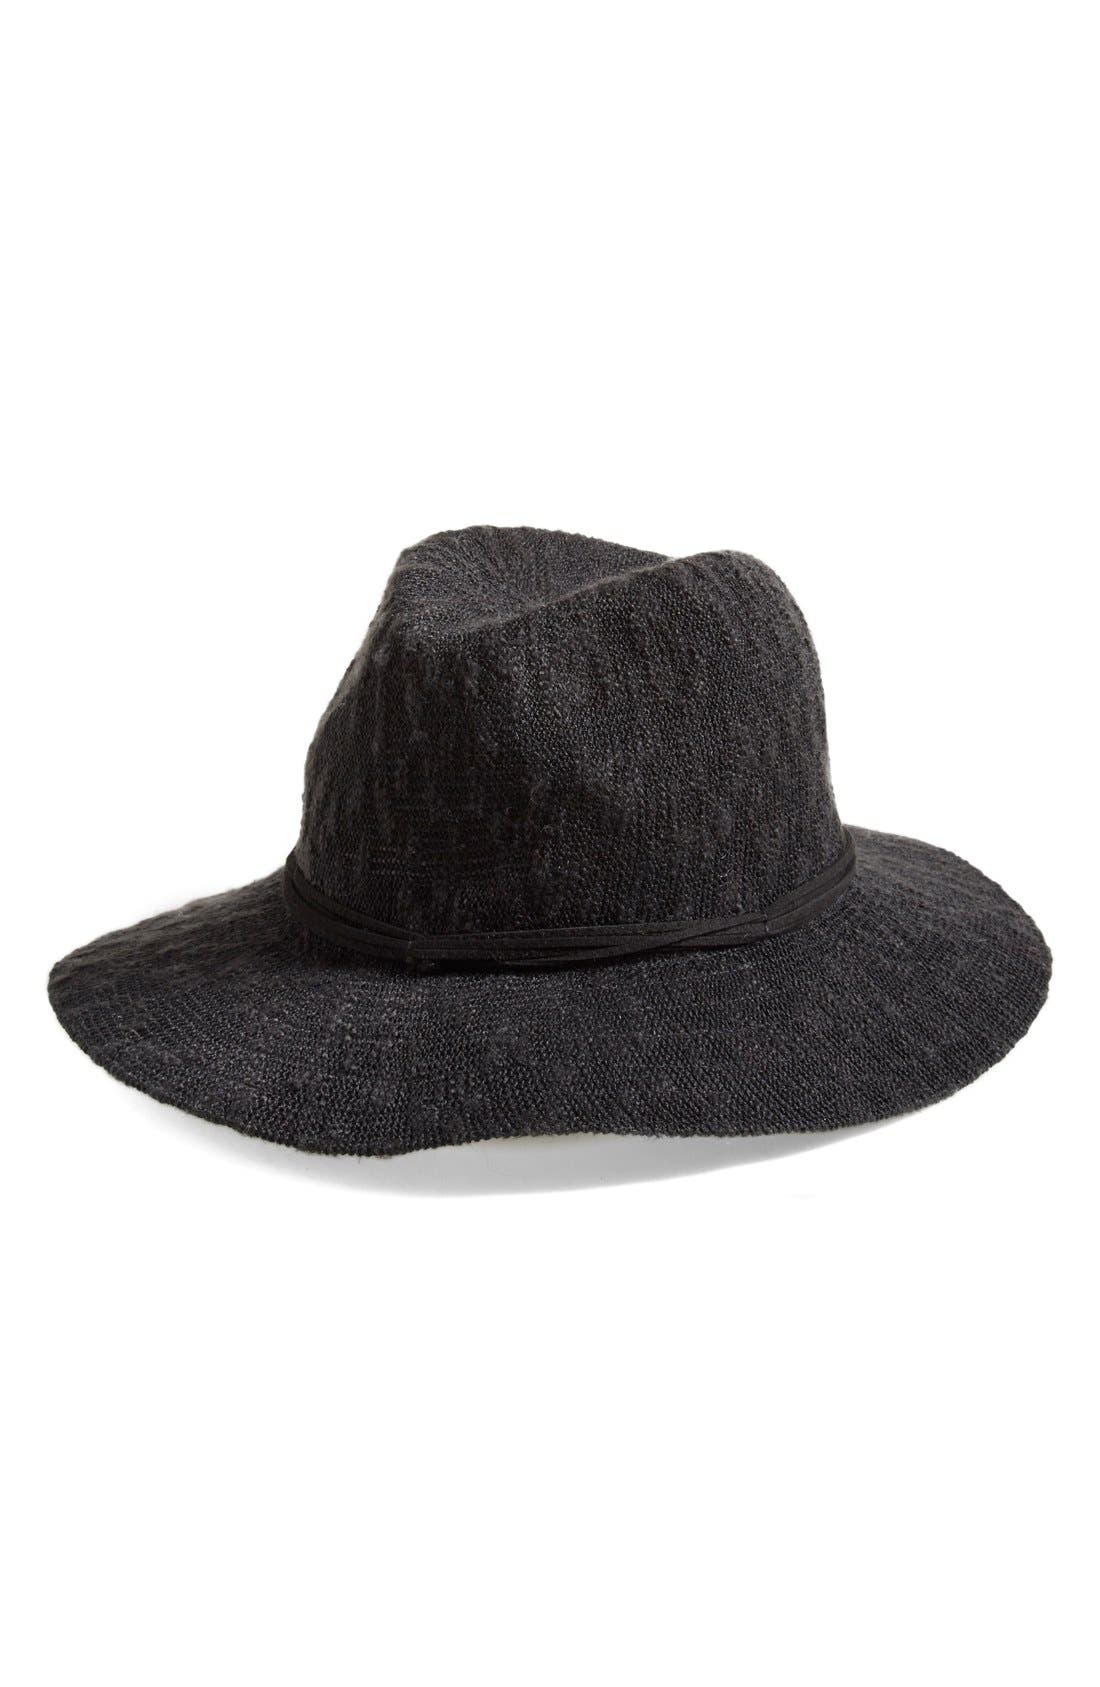 Alternate Image 1 Selected - Hinge Slub Knit Panama Hat